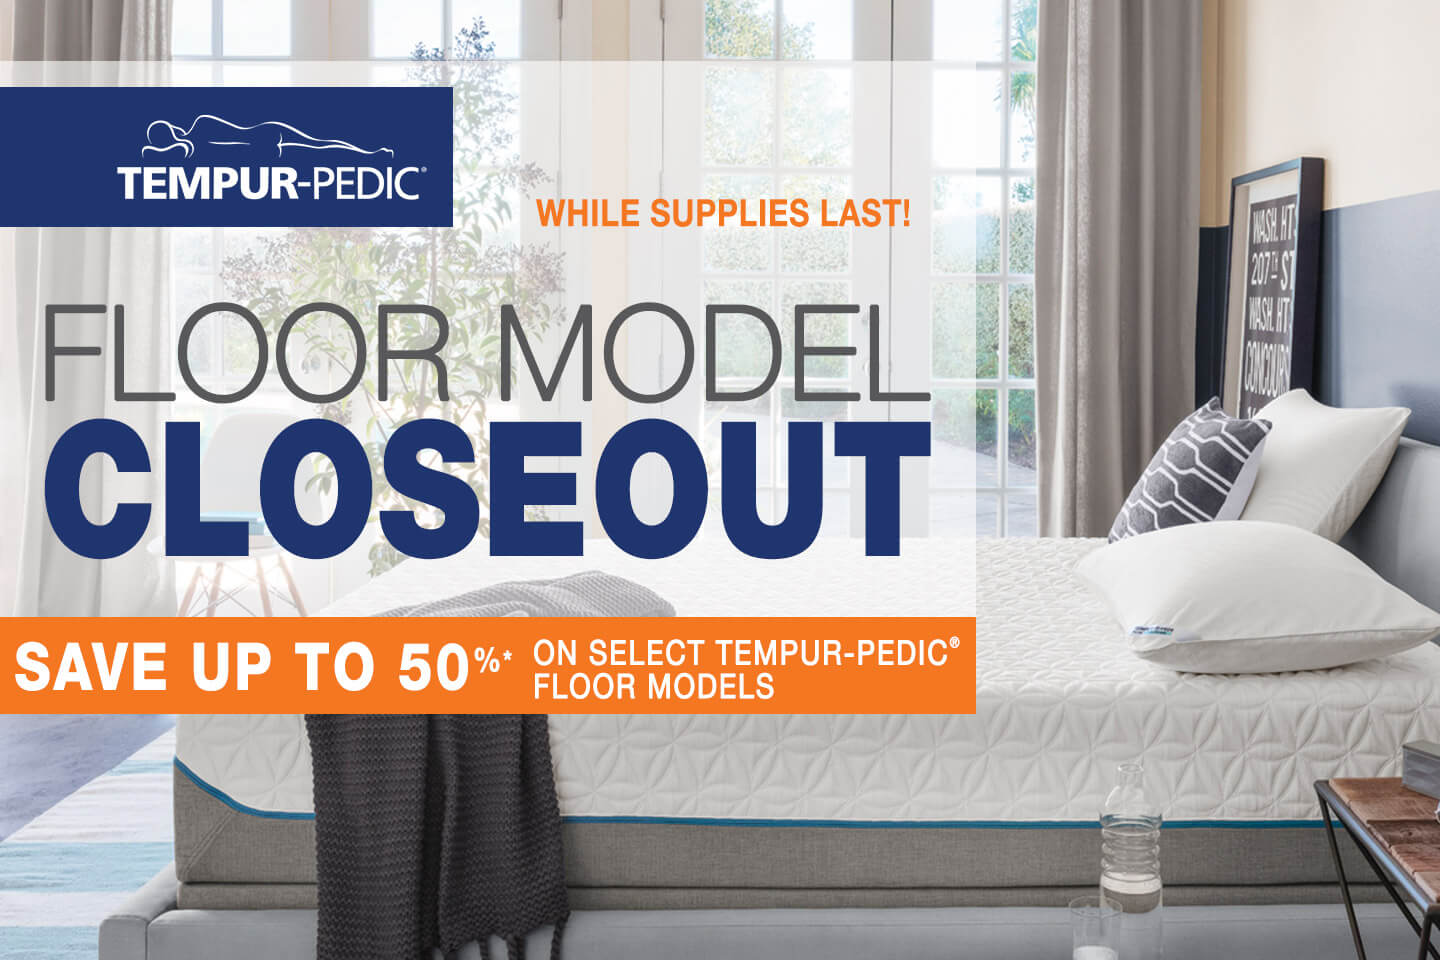 Tempur-Pedic Floor Model Closeout! Save up to 50% on select Tempur-Pedic Floor Models.